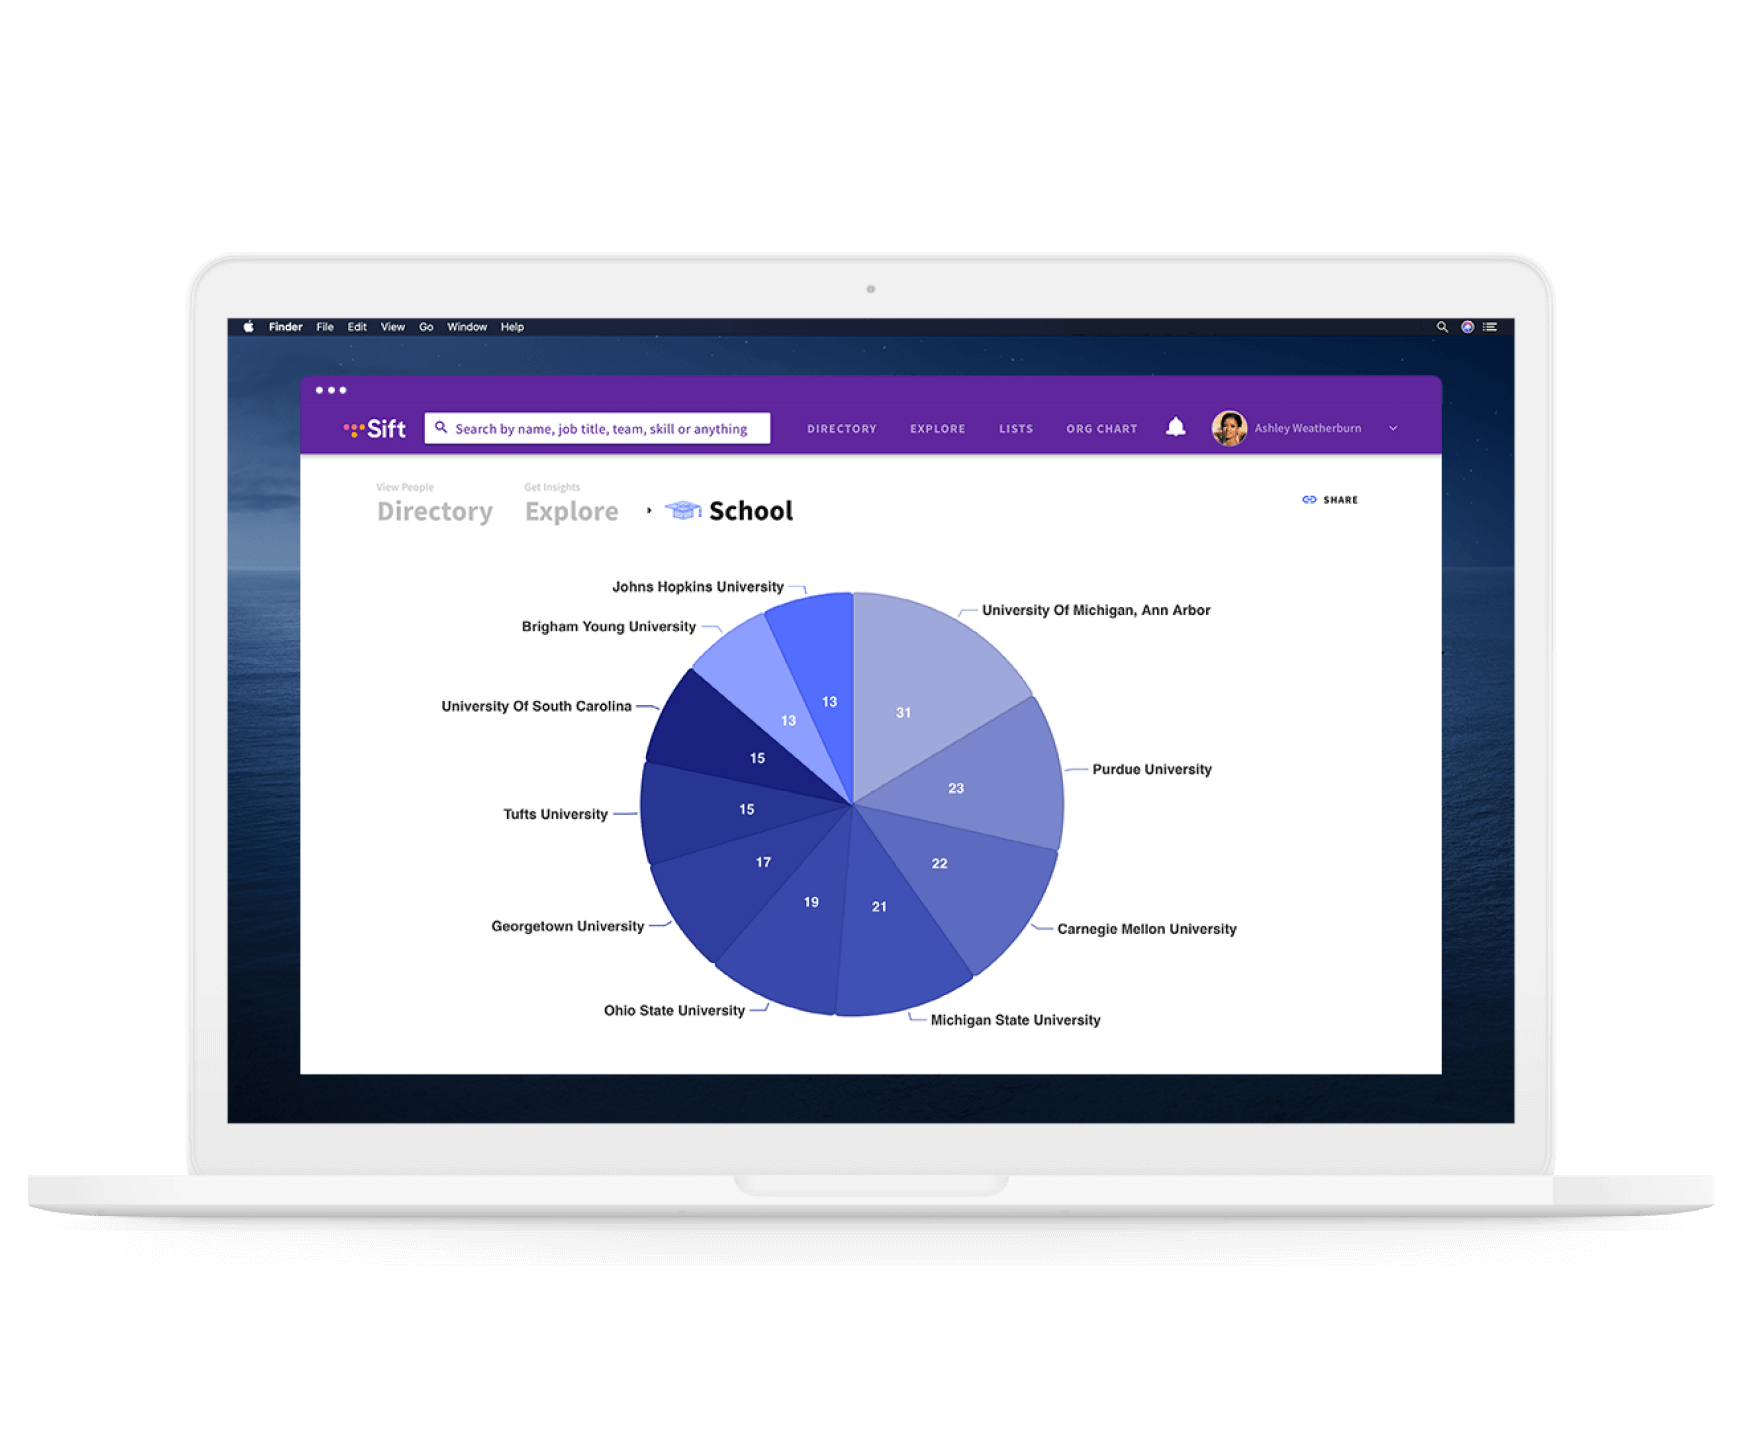 Sift showing employee demographics on a laptop